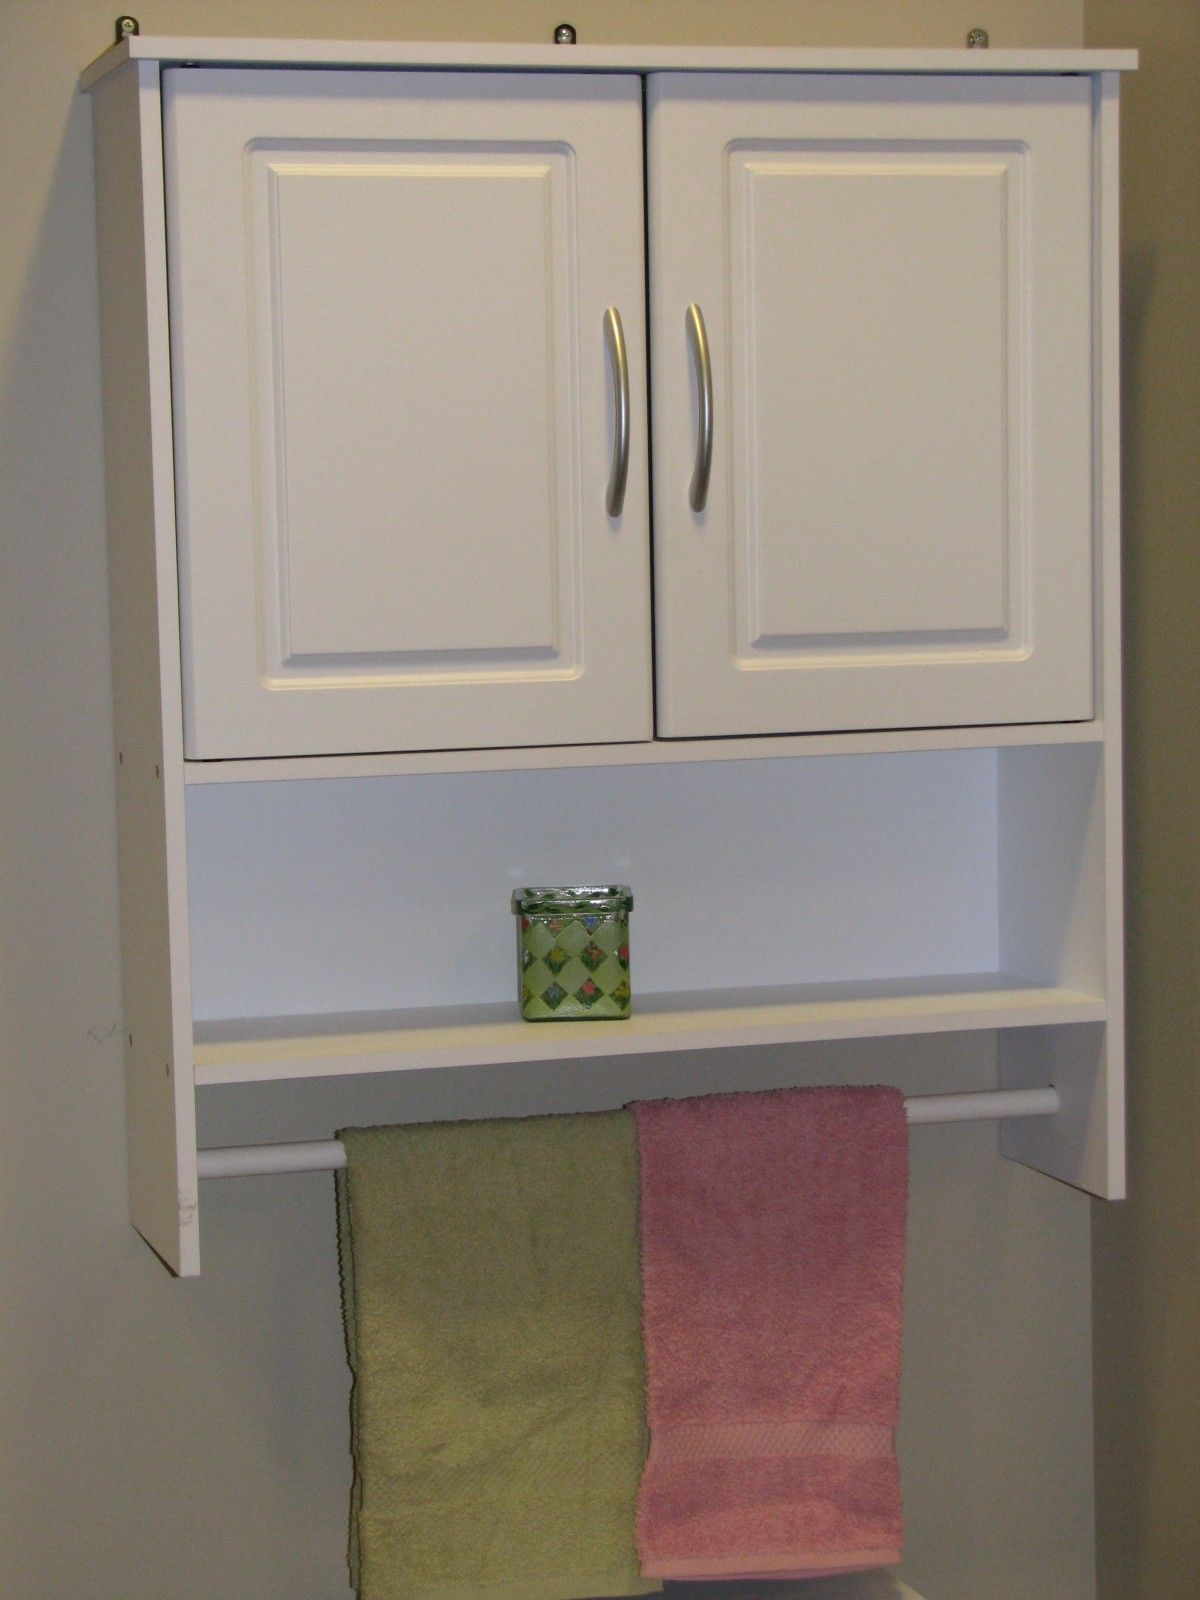 Bathroom Cabinet Fancy Wall Towel Bar Over